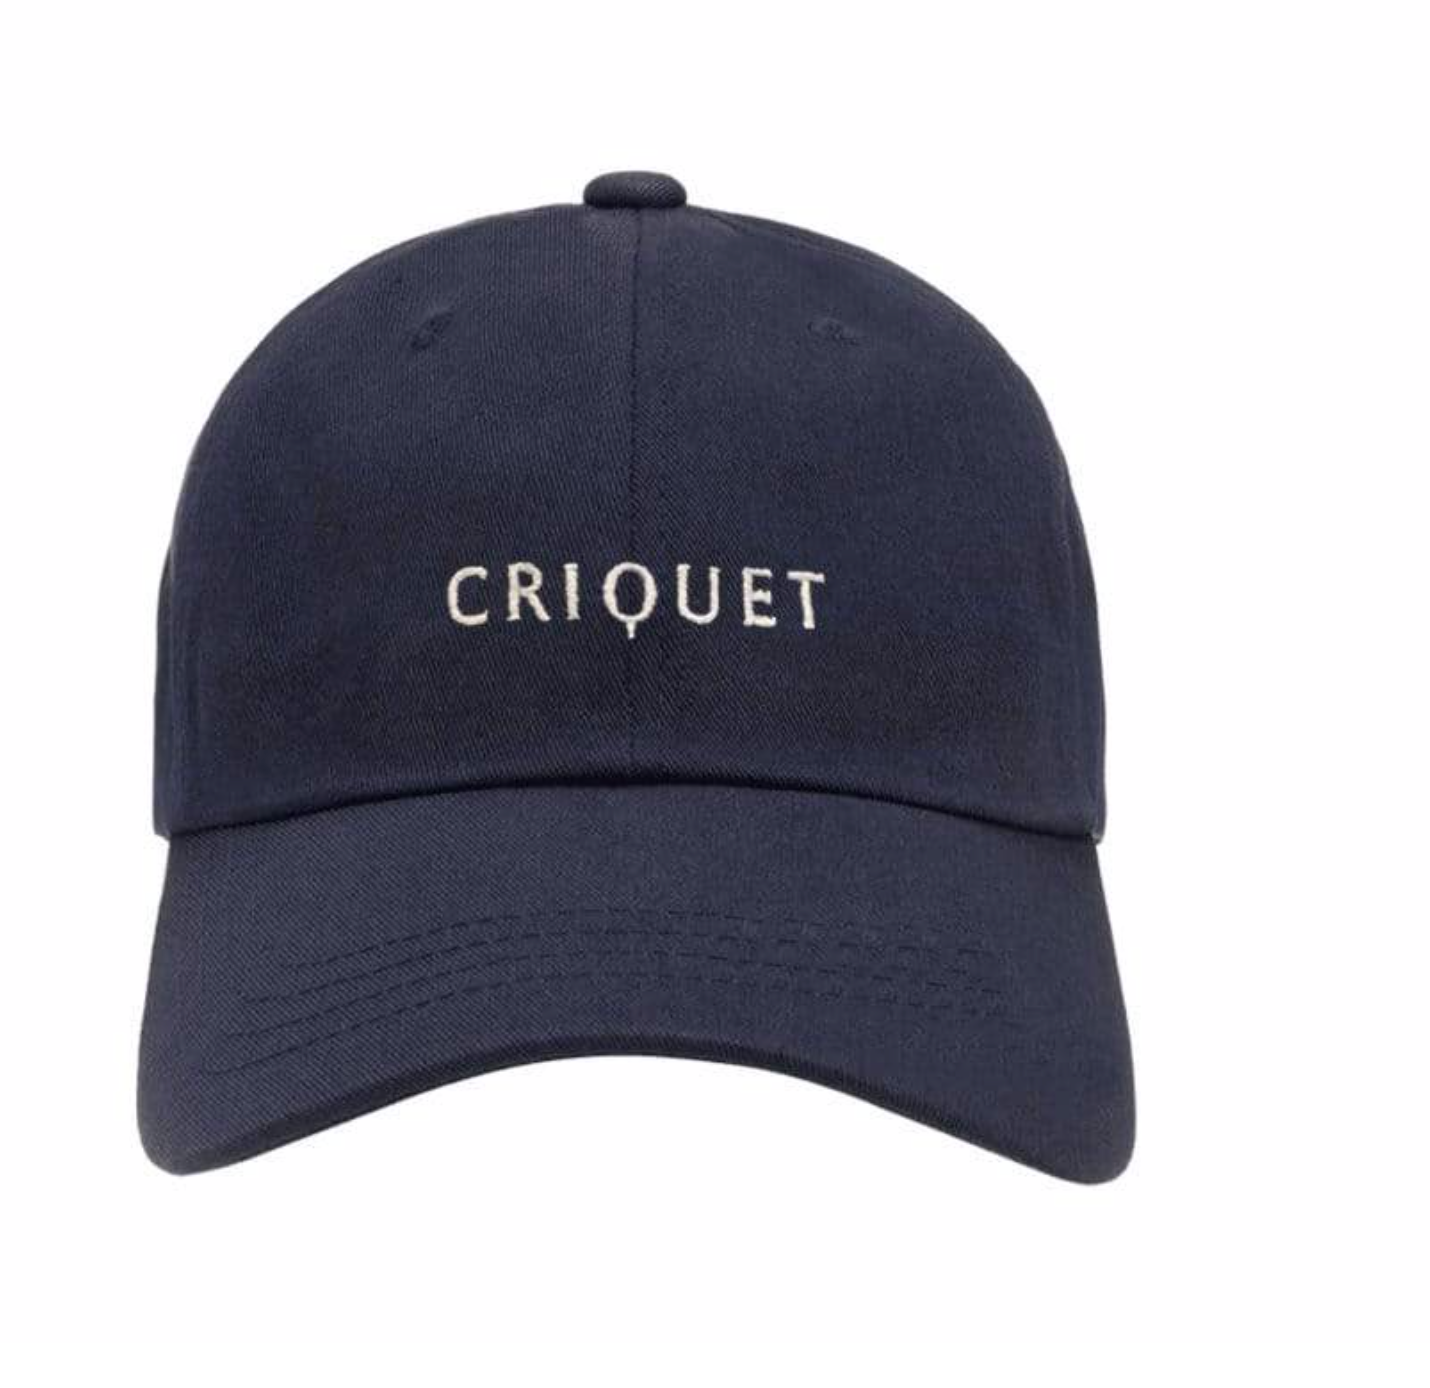 criquet: unstructured twill hat - navy